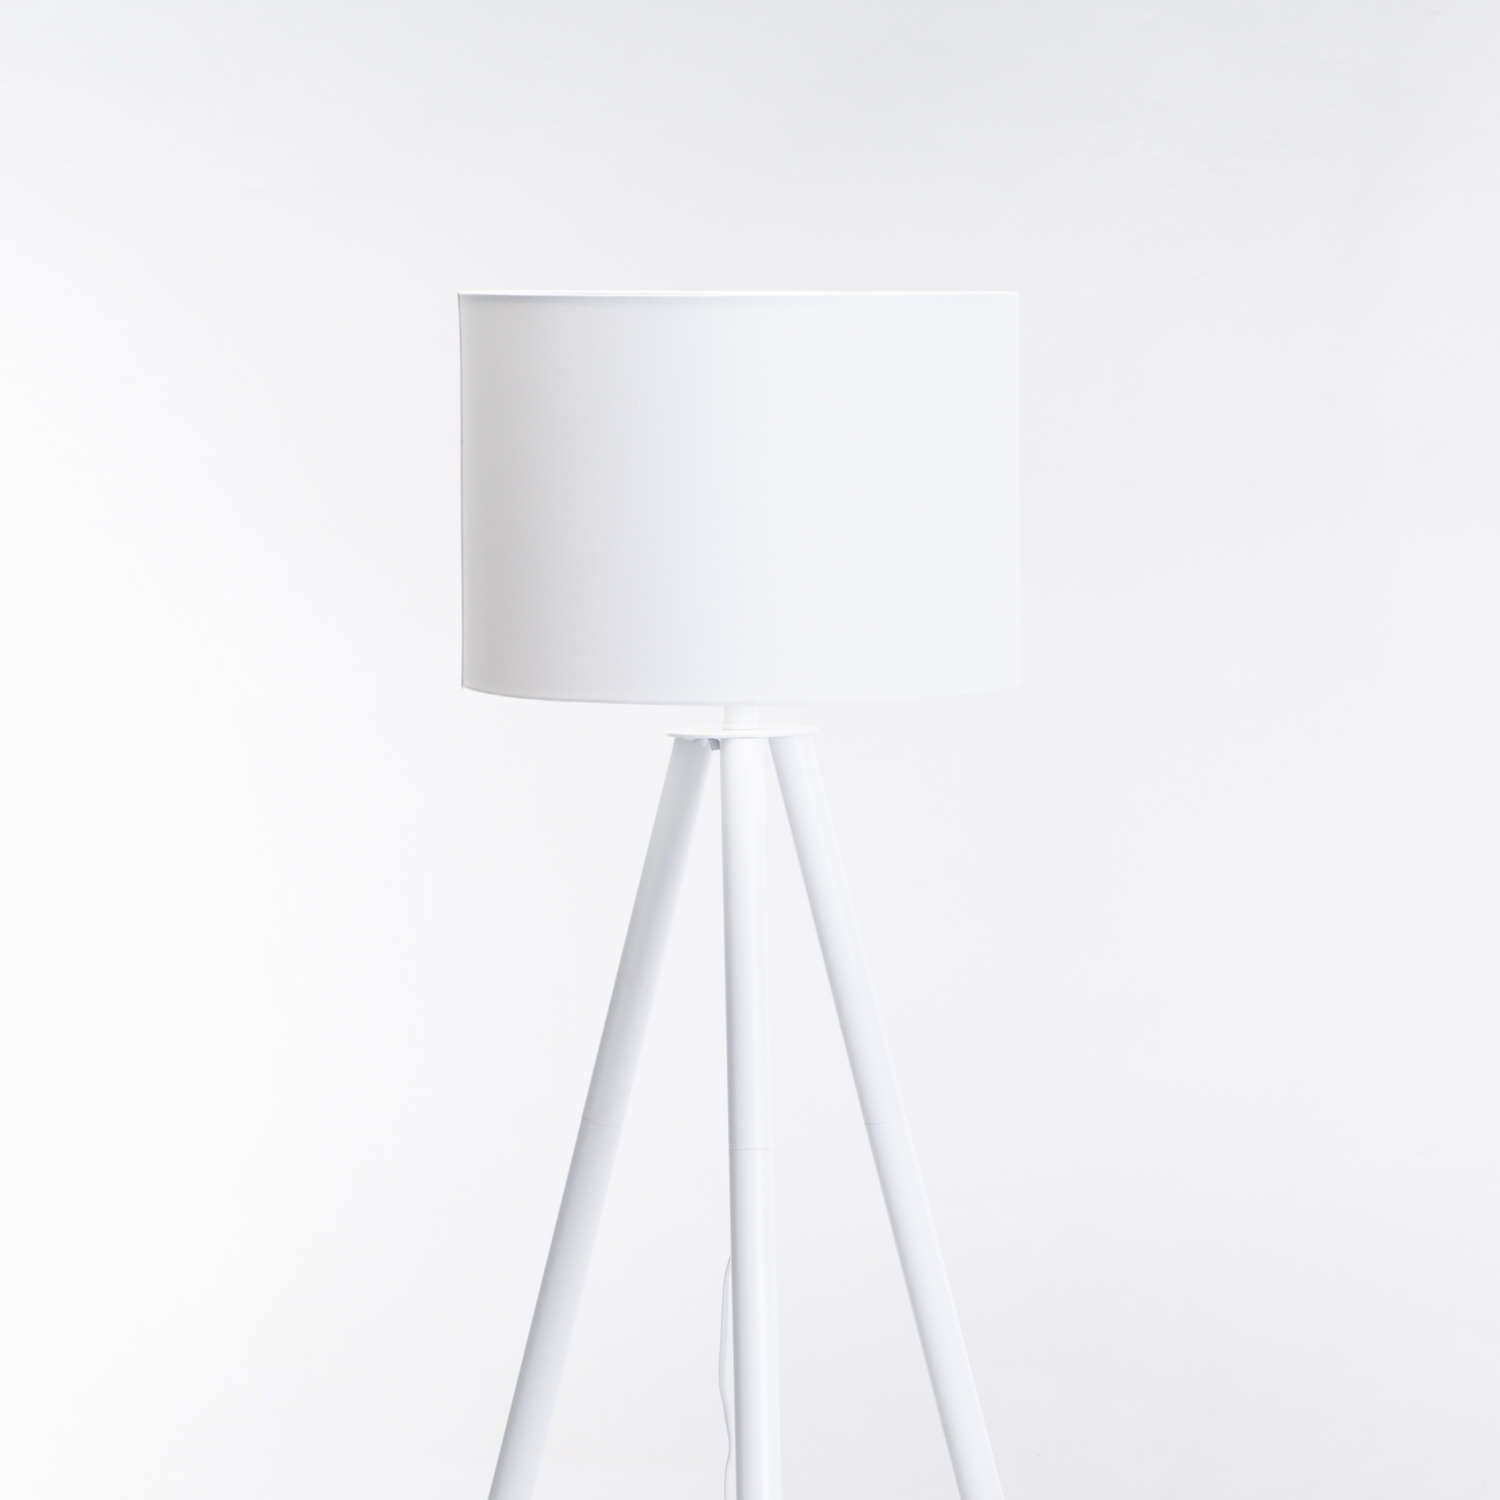 FLOOR WOODEN TRIPOD WHITE SHADE